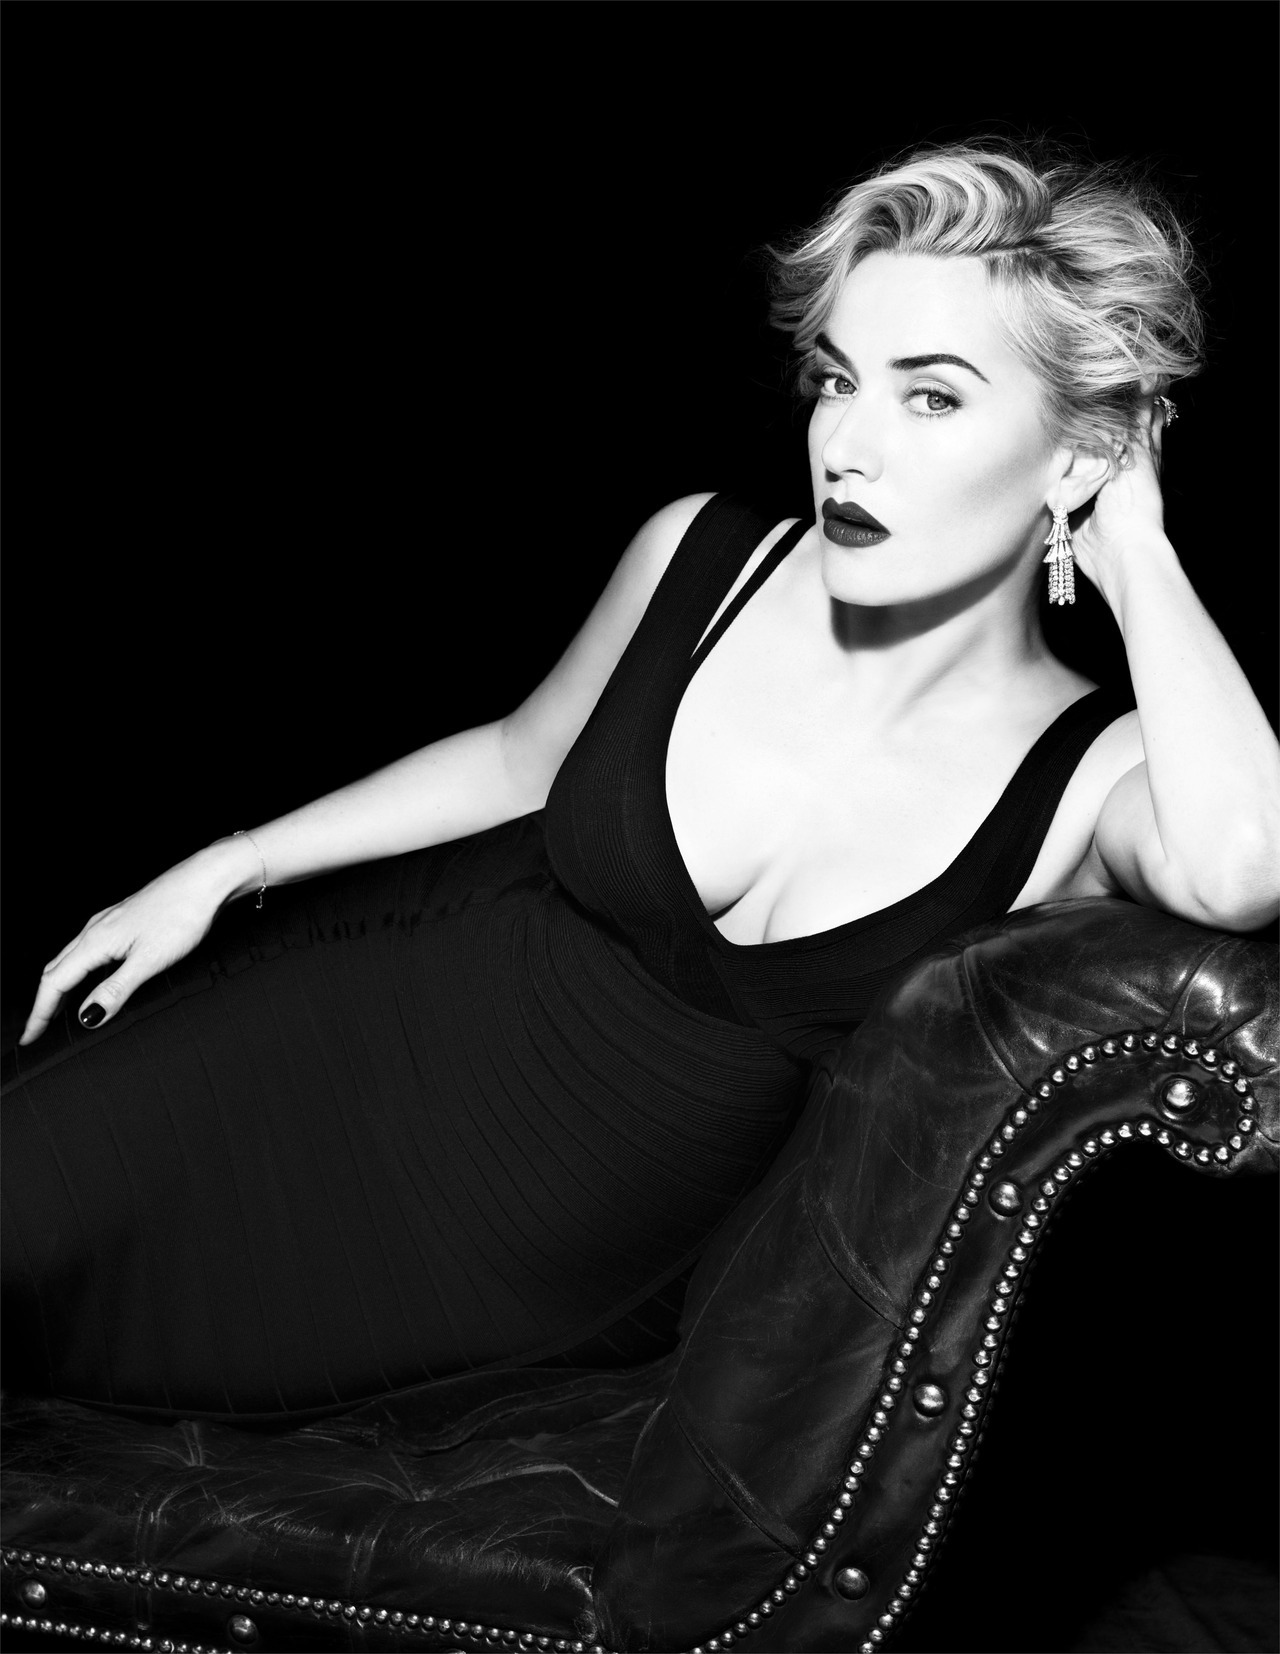 suicideblonde:  Kate Winslet photographed by Miguel Reveriego for Vogue Spain in 2012